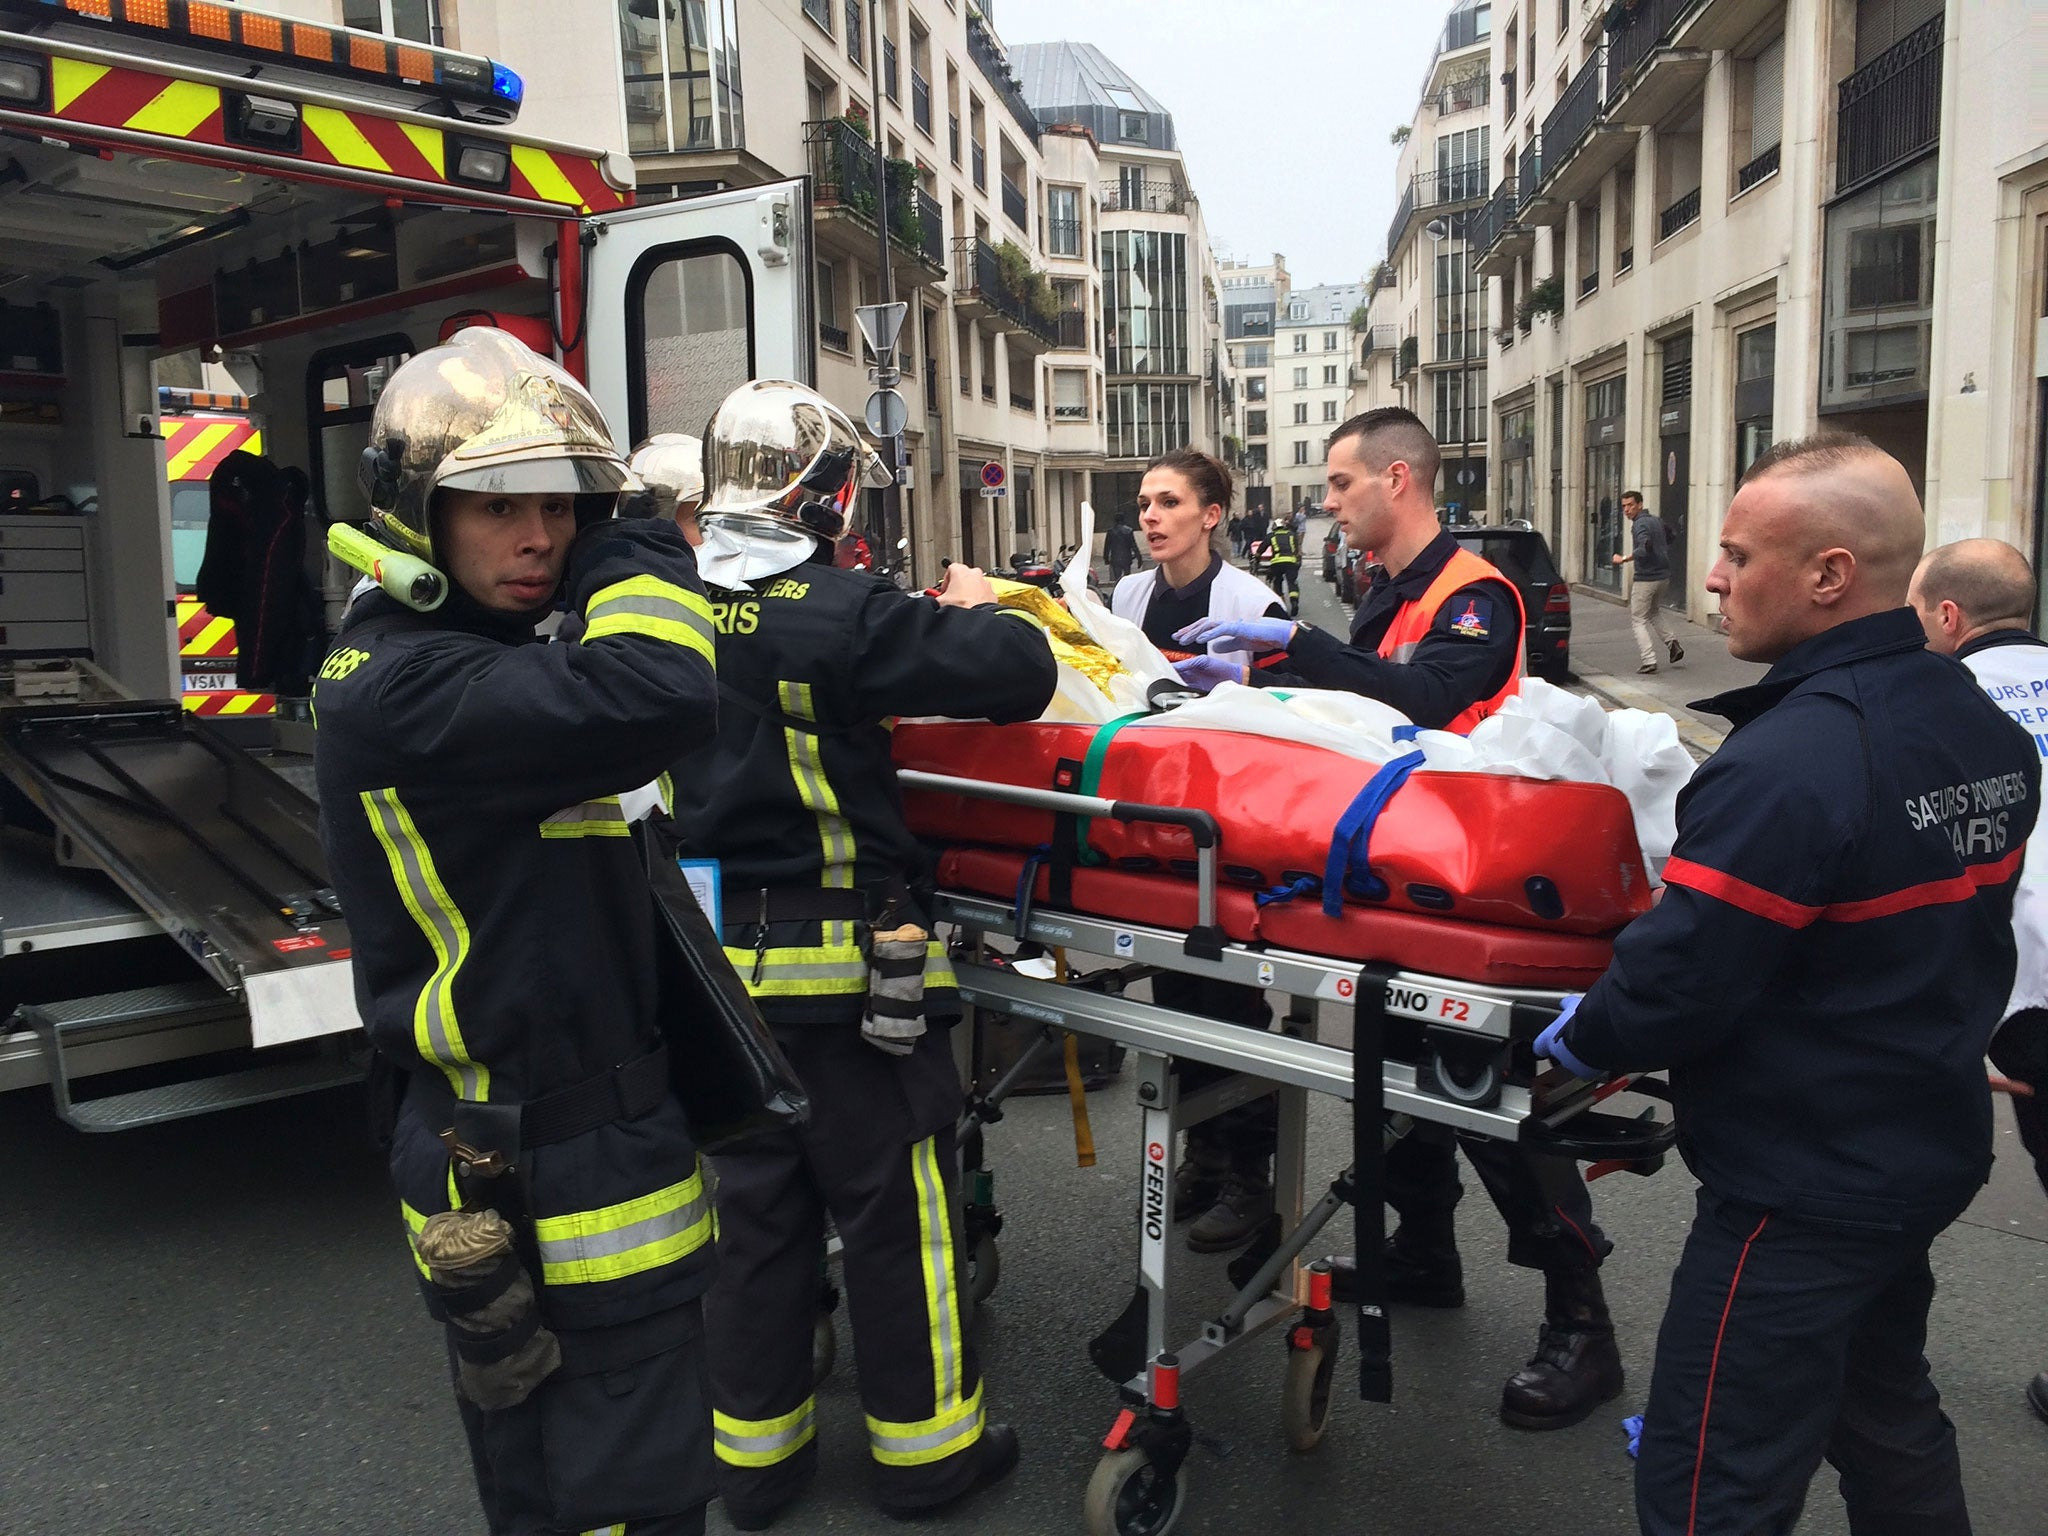 Charlie Hebdo Shooting Live Updates From Paris As It Happened The Independent